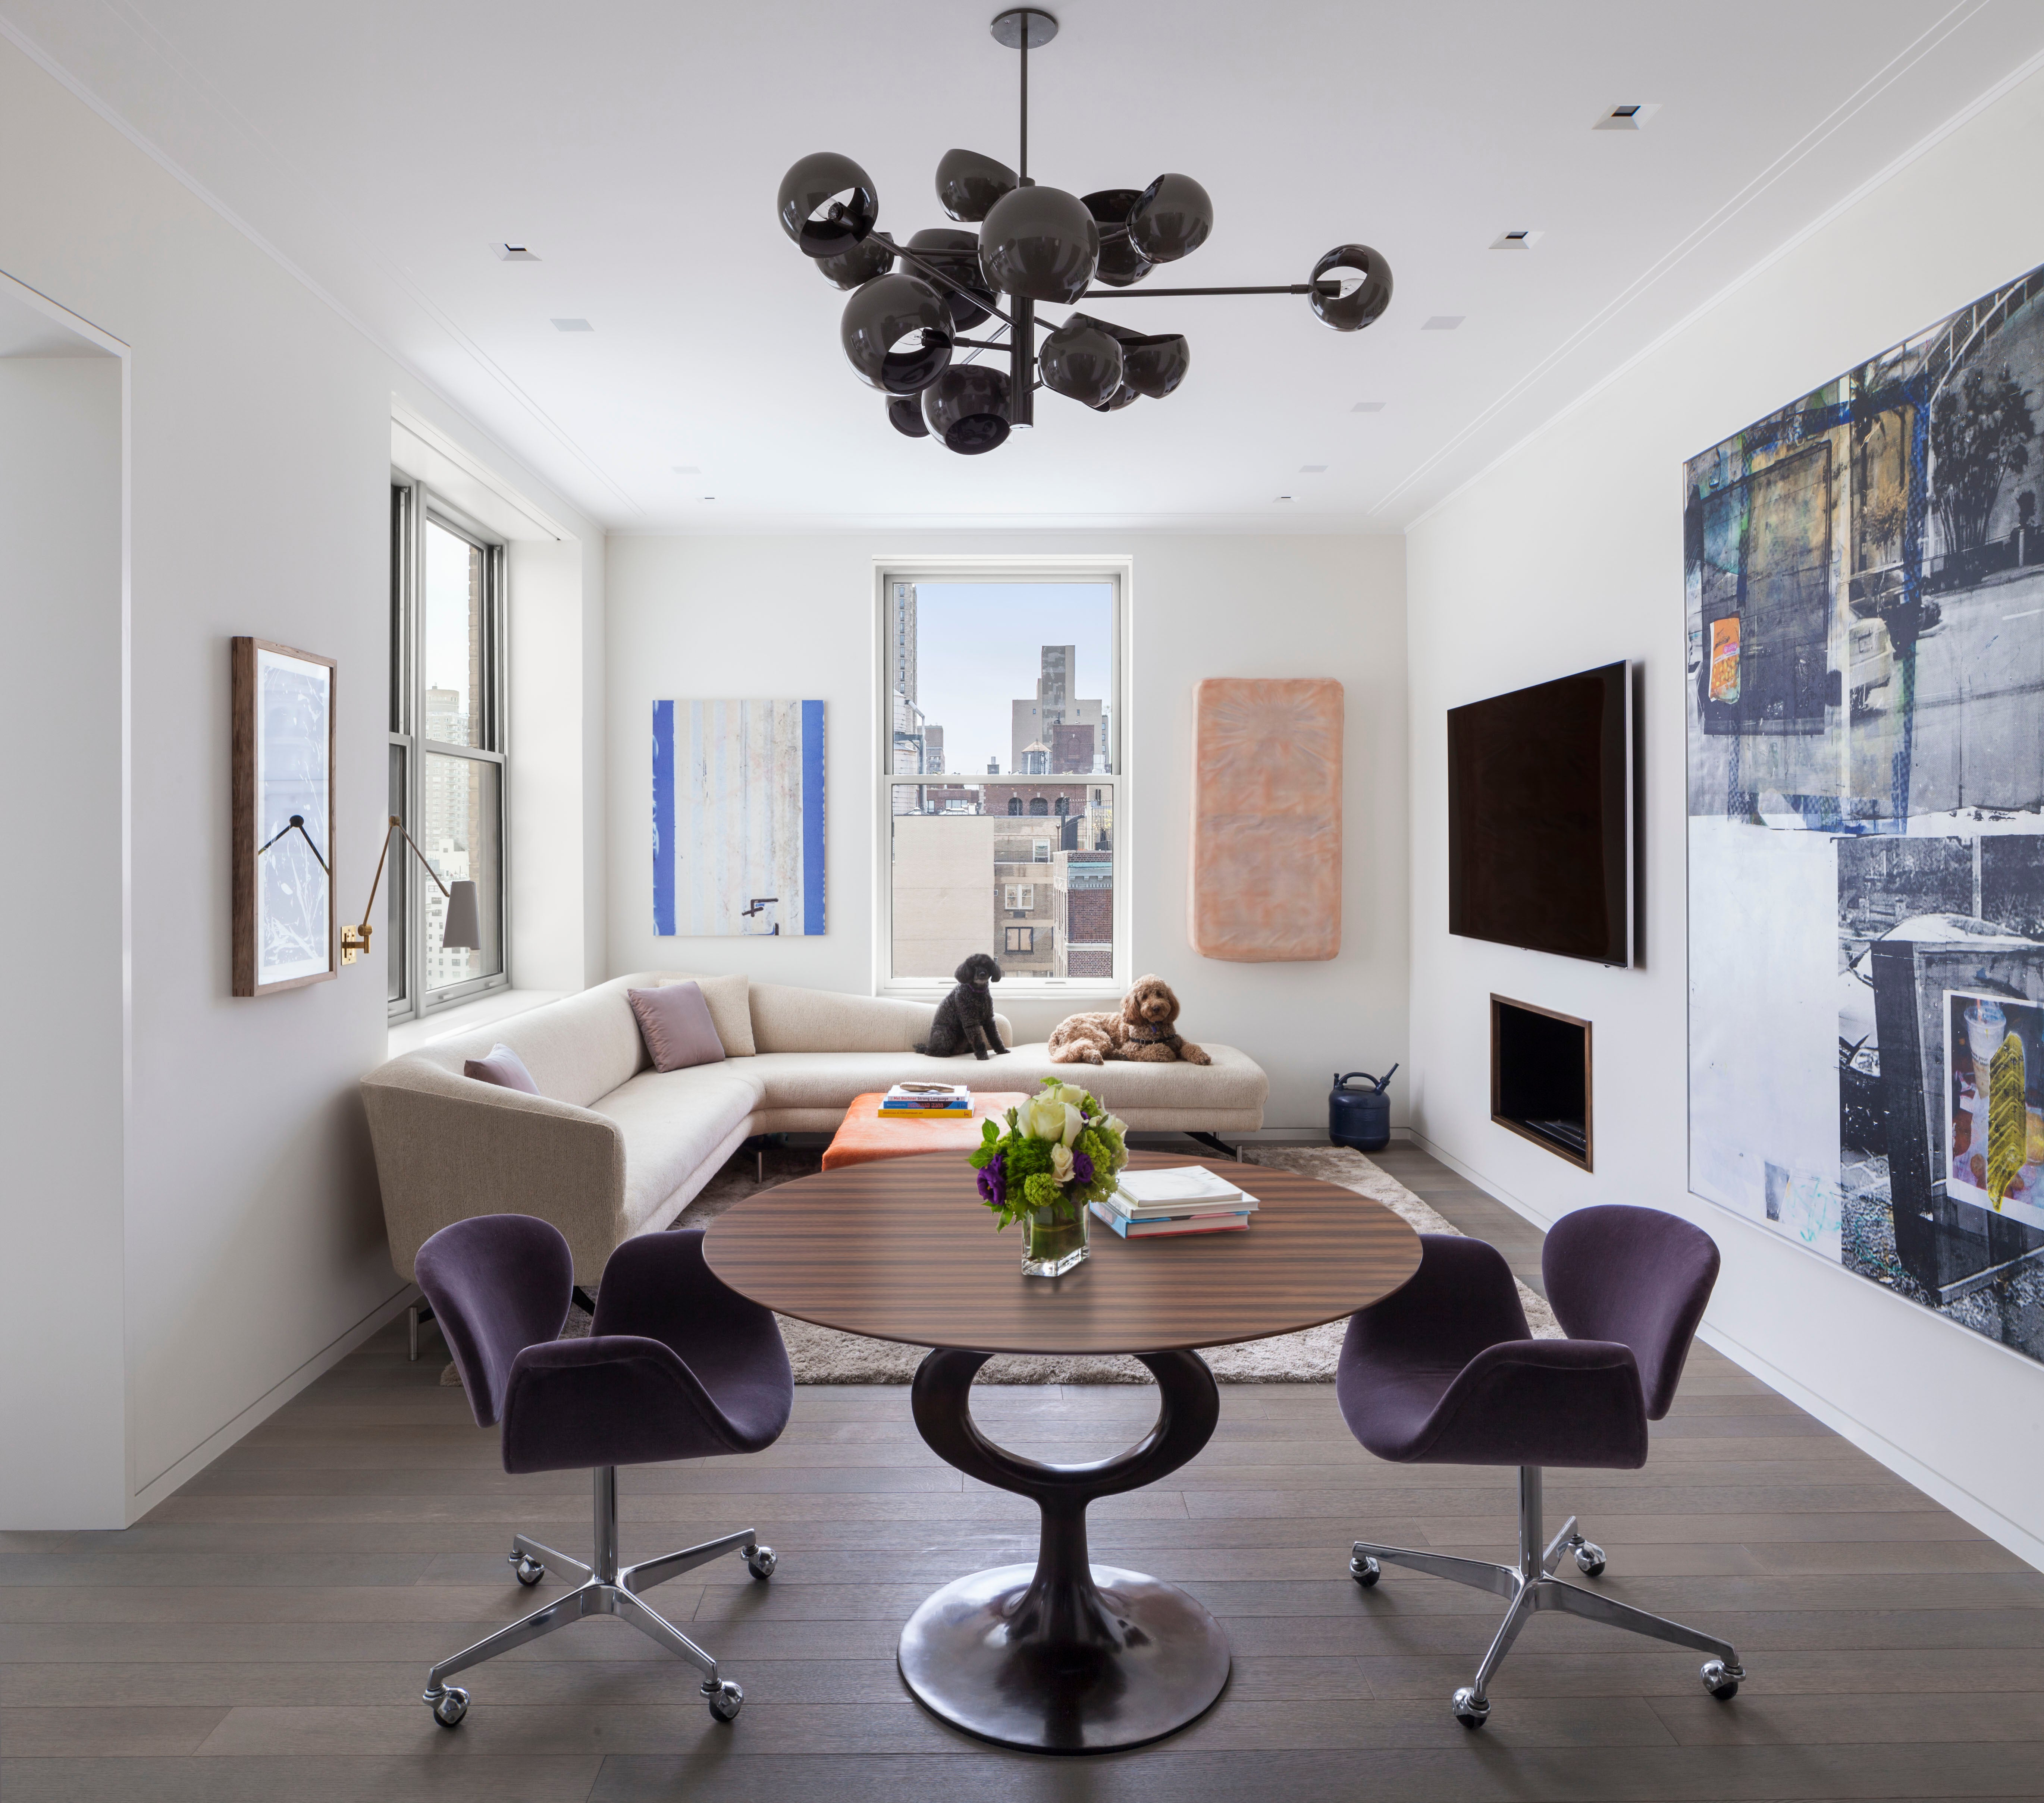 Living Room Furniture North York: Living Room By Steven Harris / Rees Roberts & Partners On